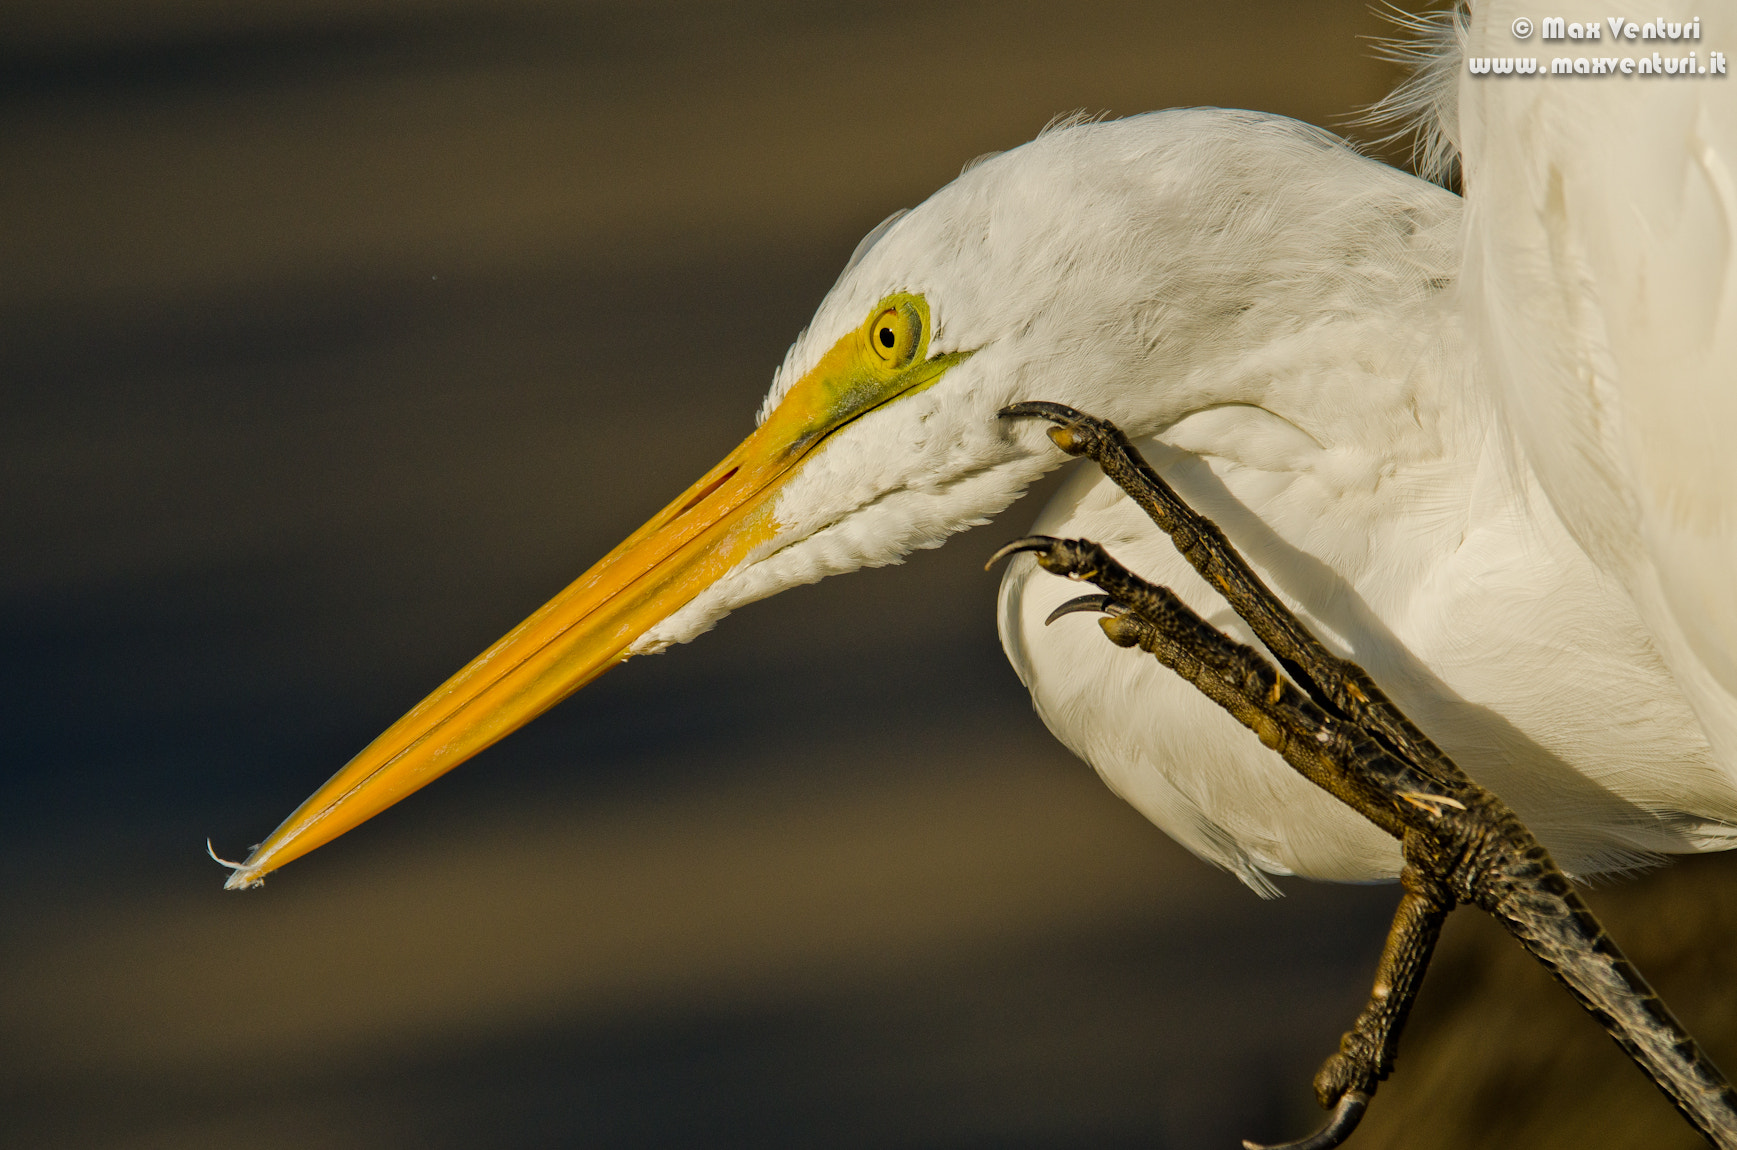 Photograph WHITE EGRET by Max Venturi on 500px